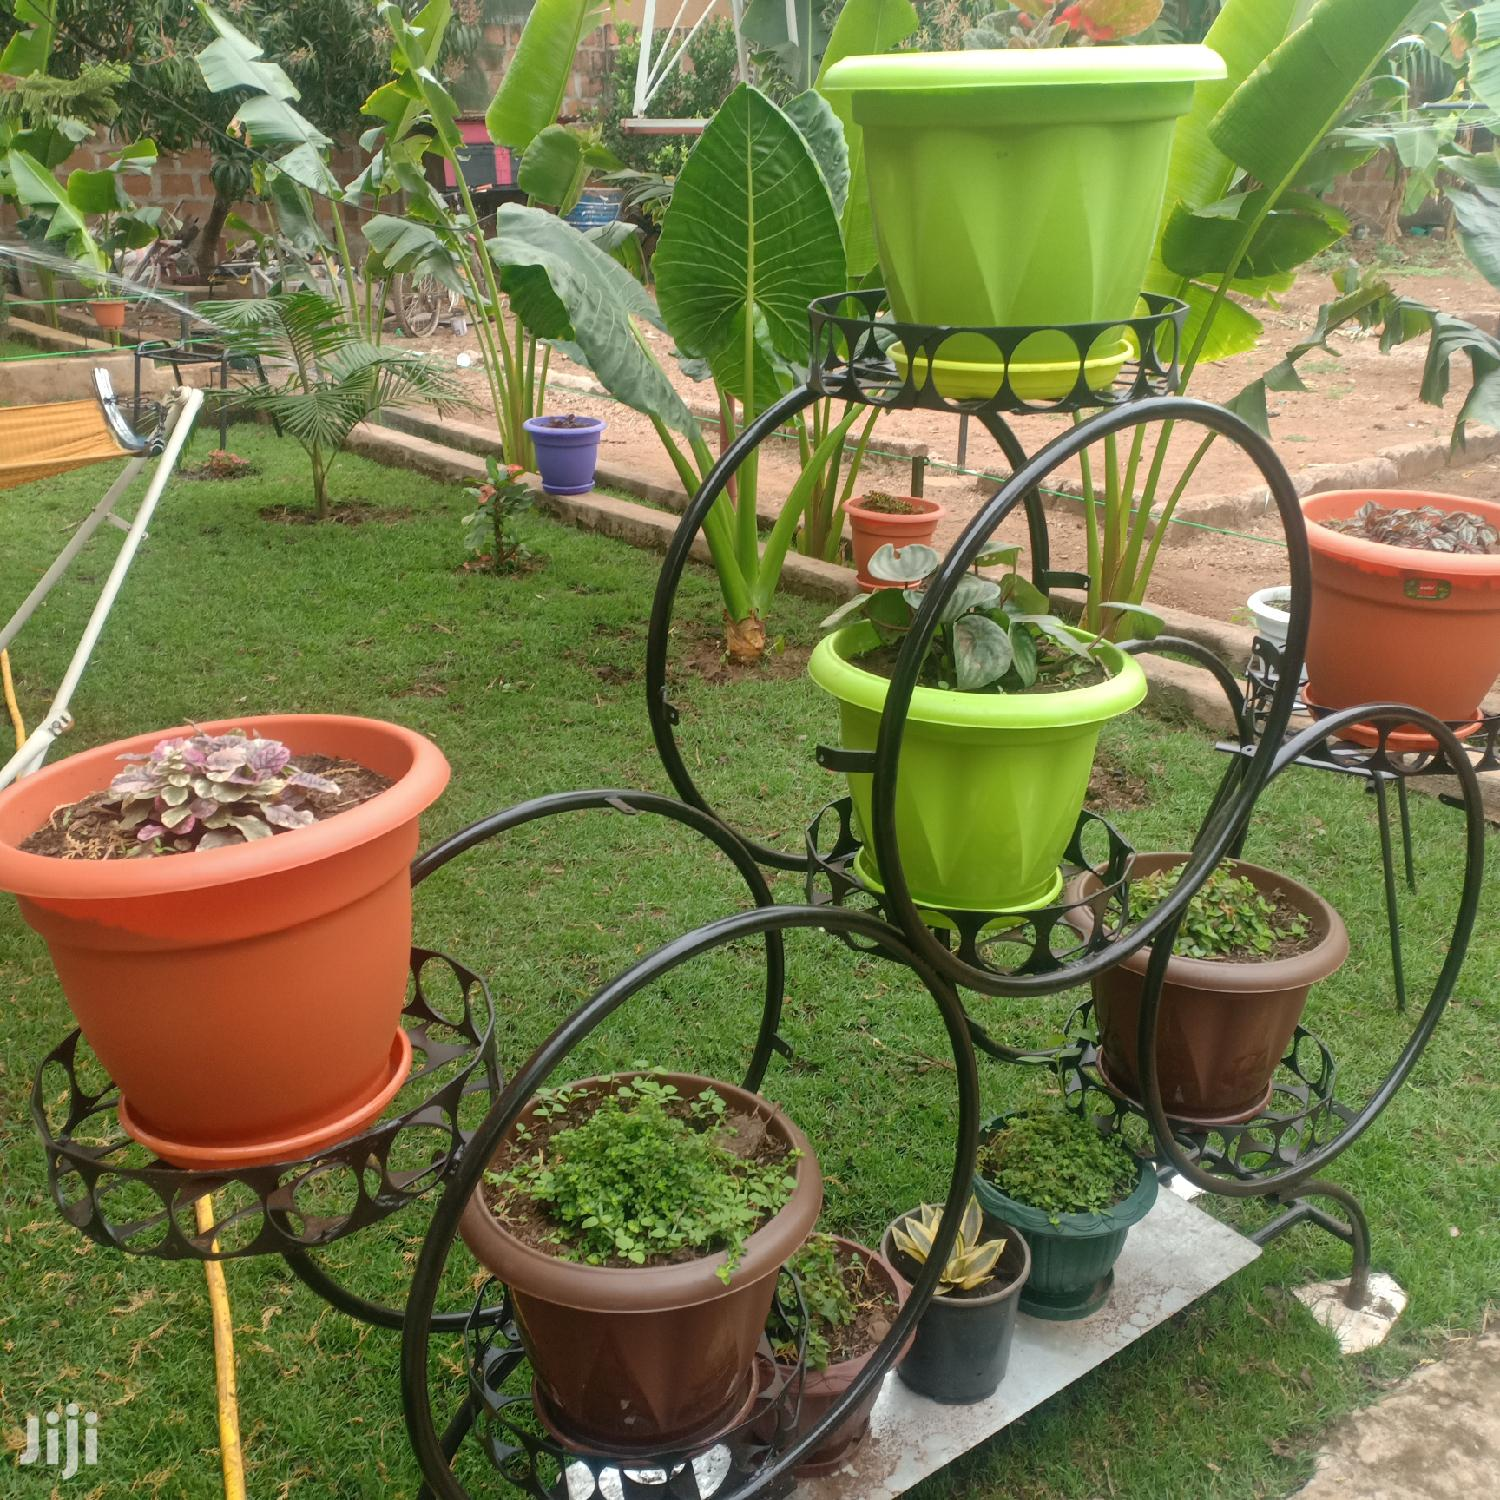 Flowers And Garden Flower Stands | Garden for sale in Moshi Rural, Kilimanjaro Region, Tanzania